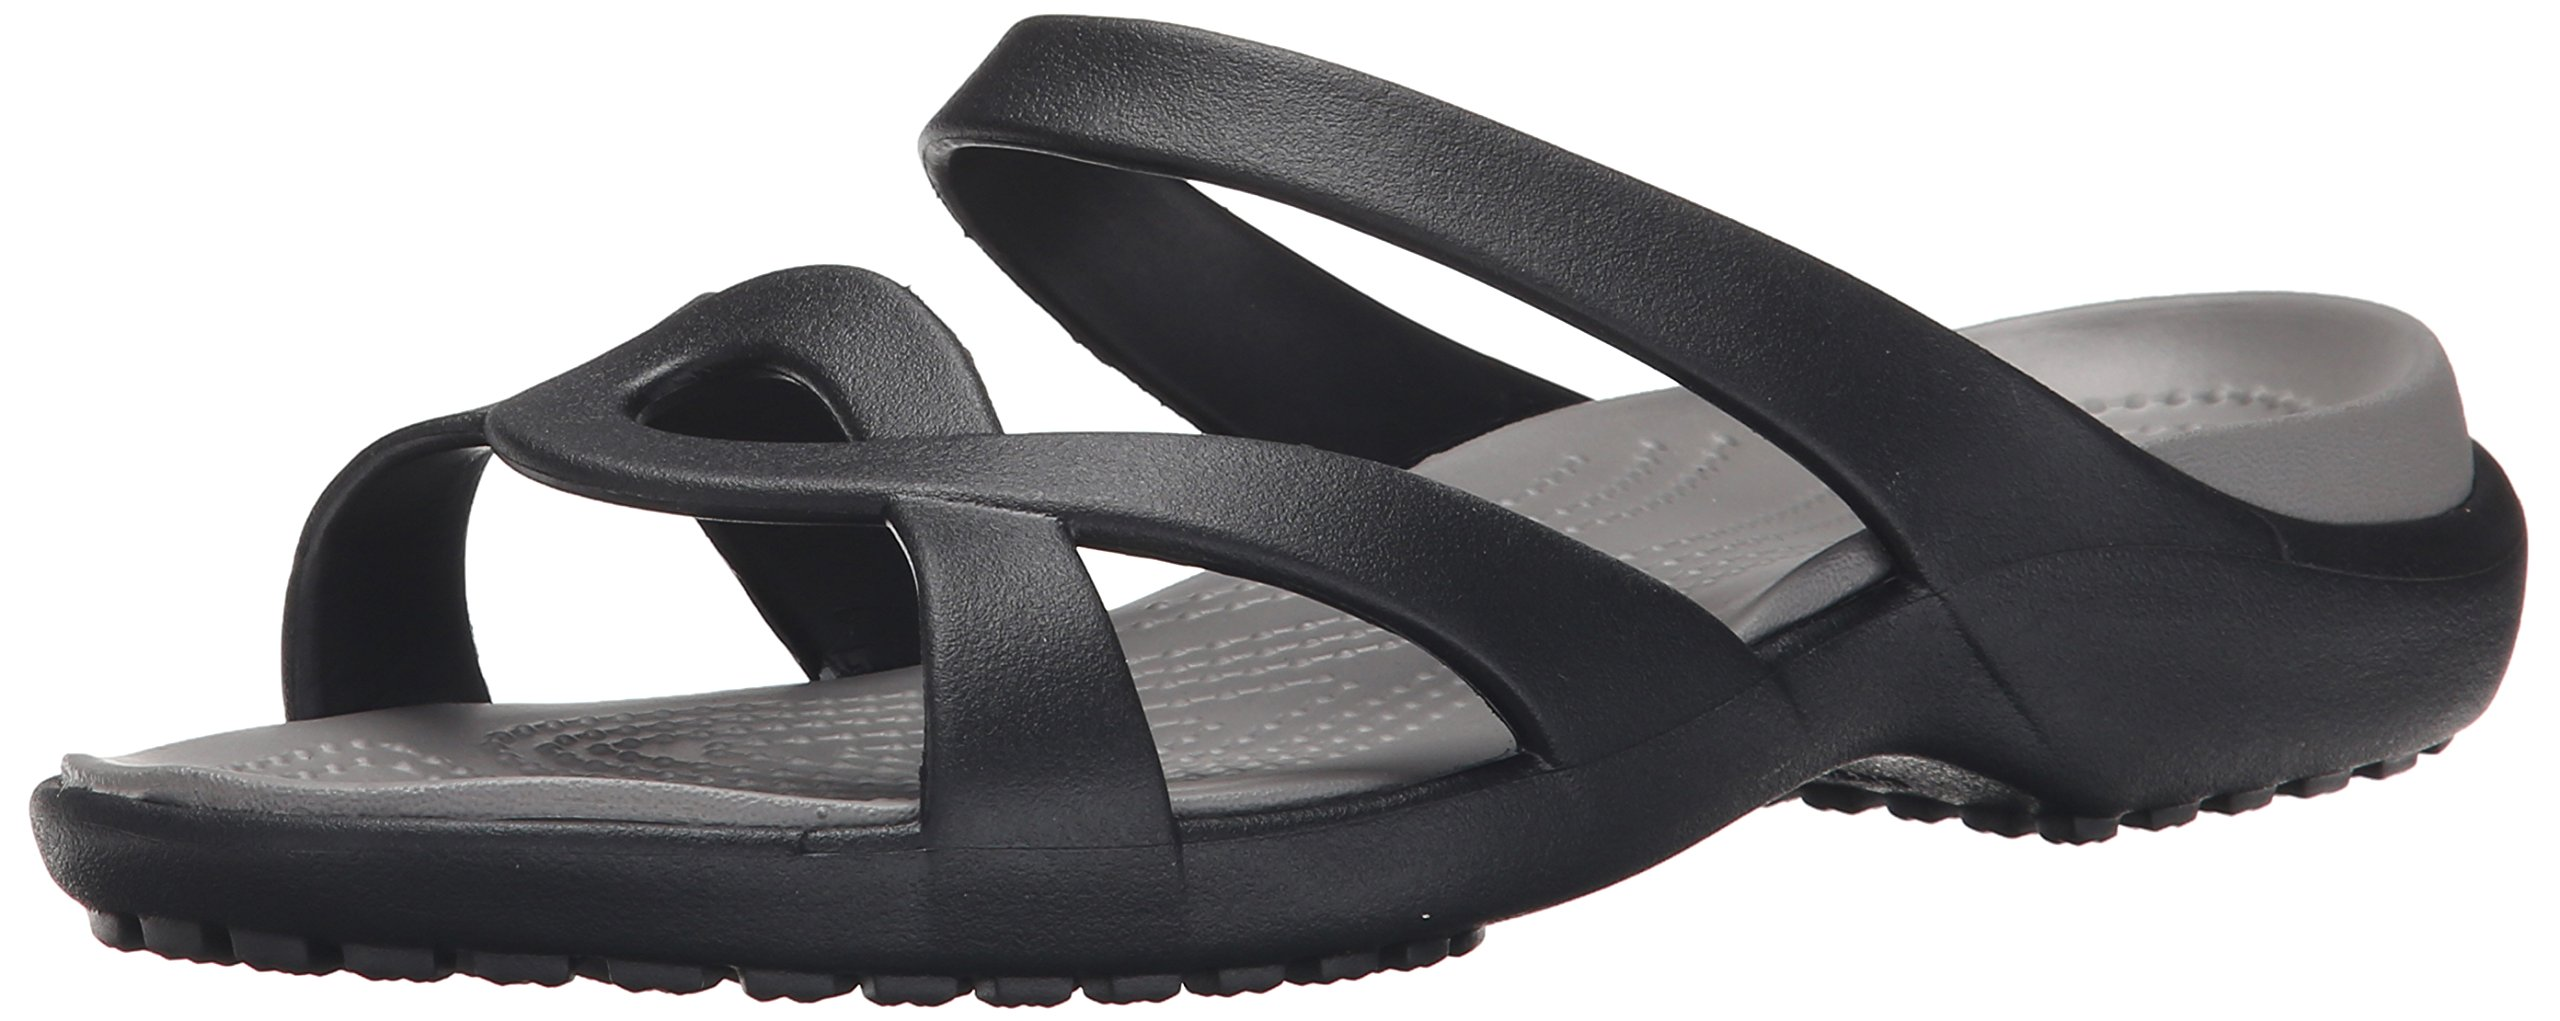 crocs Women's Meleen Twist Sandal, Black/Smoke, 8 M US